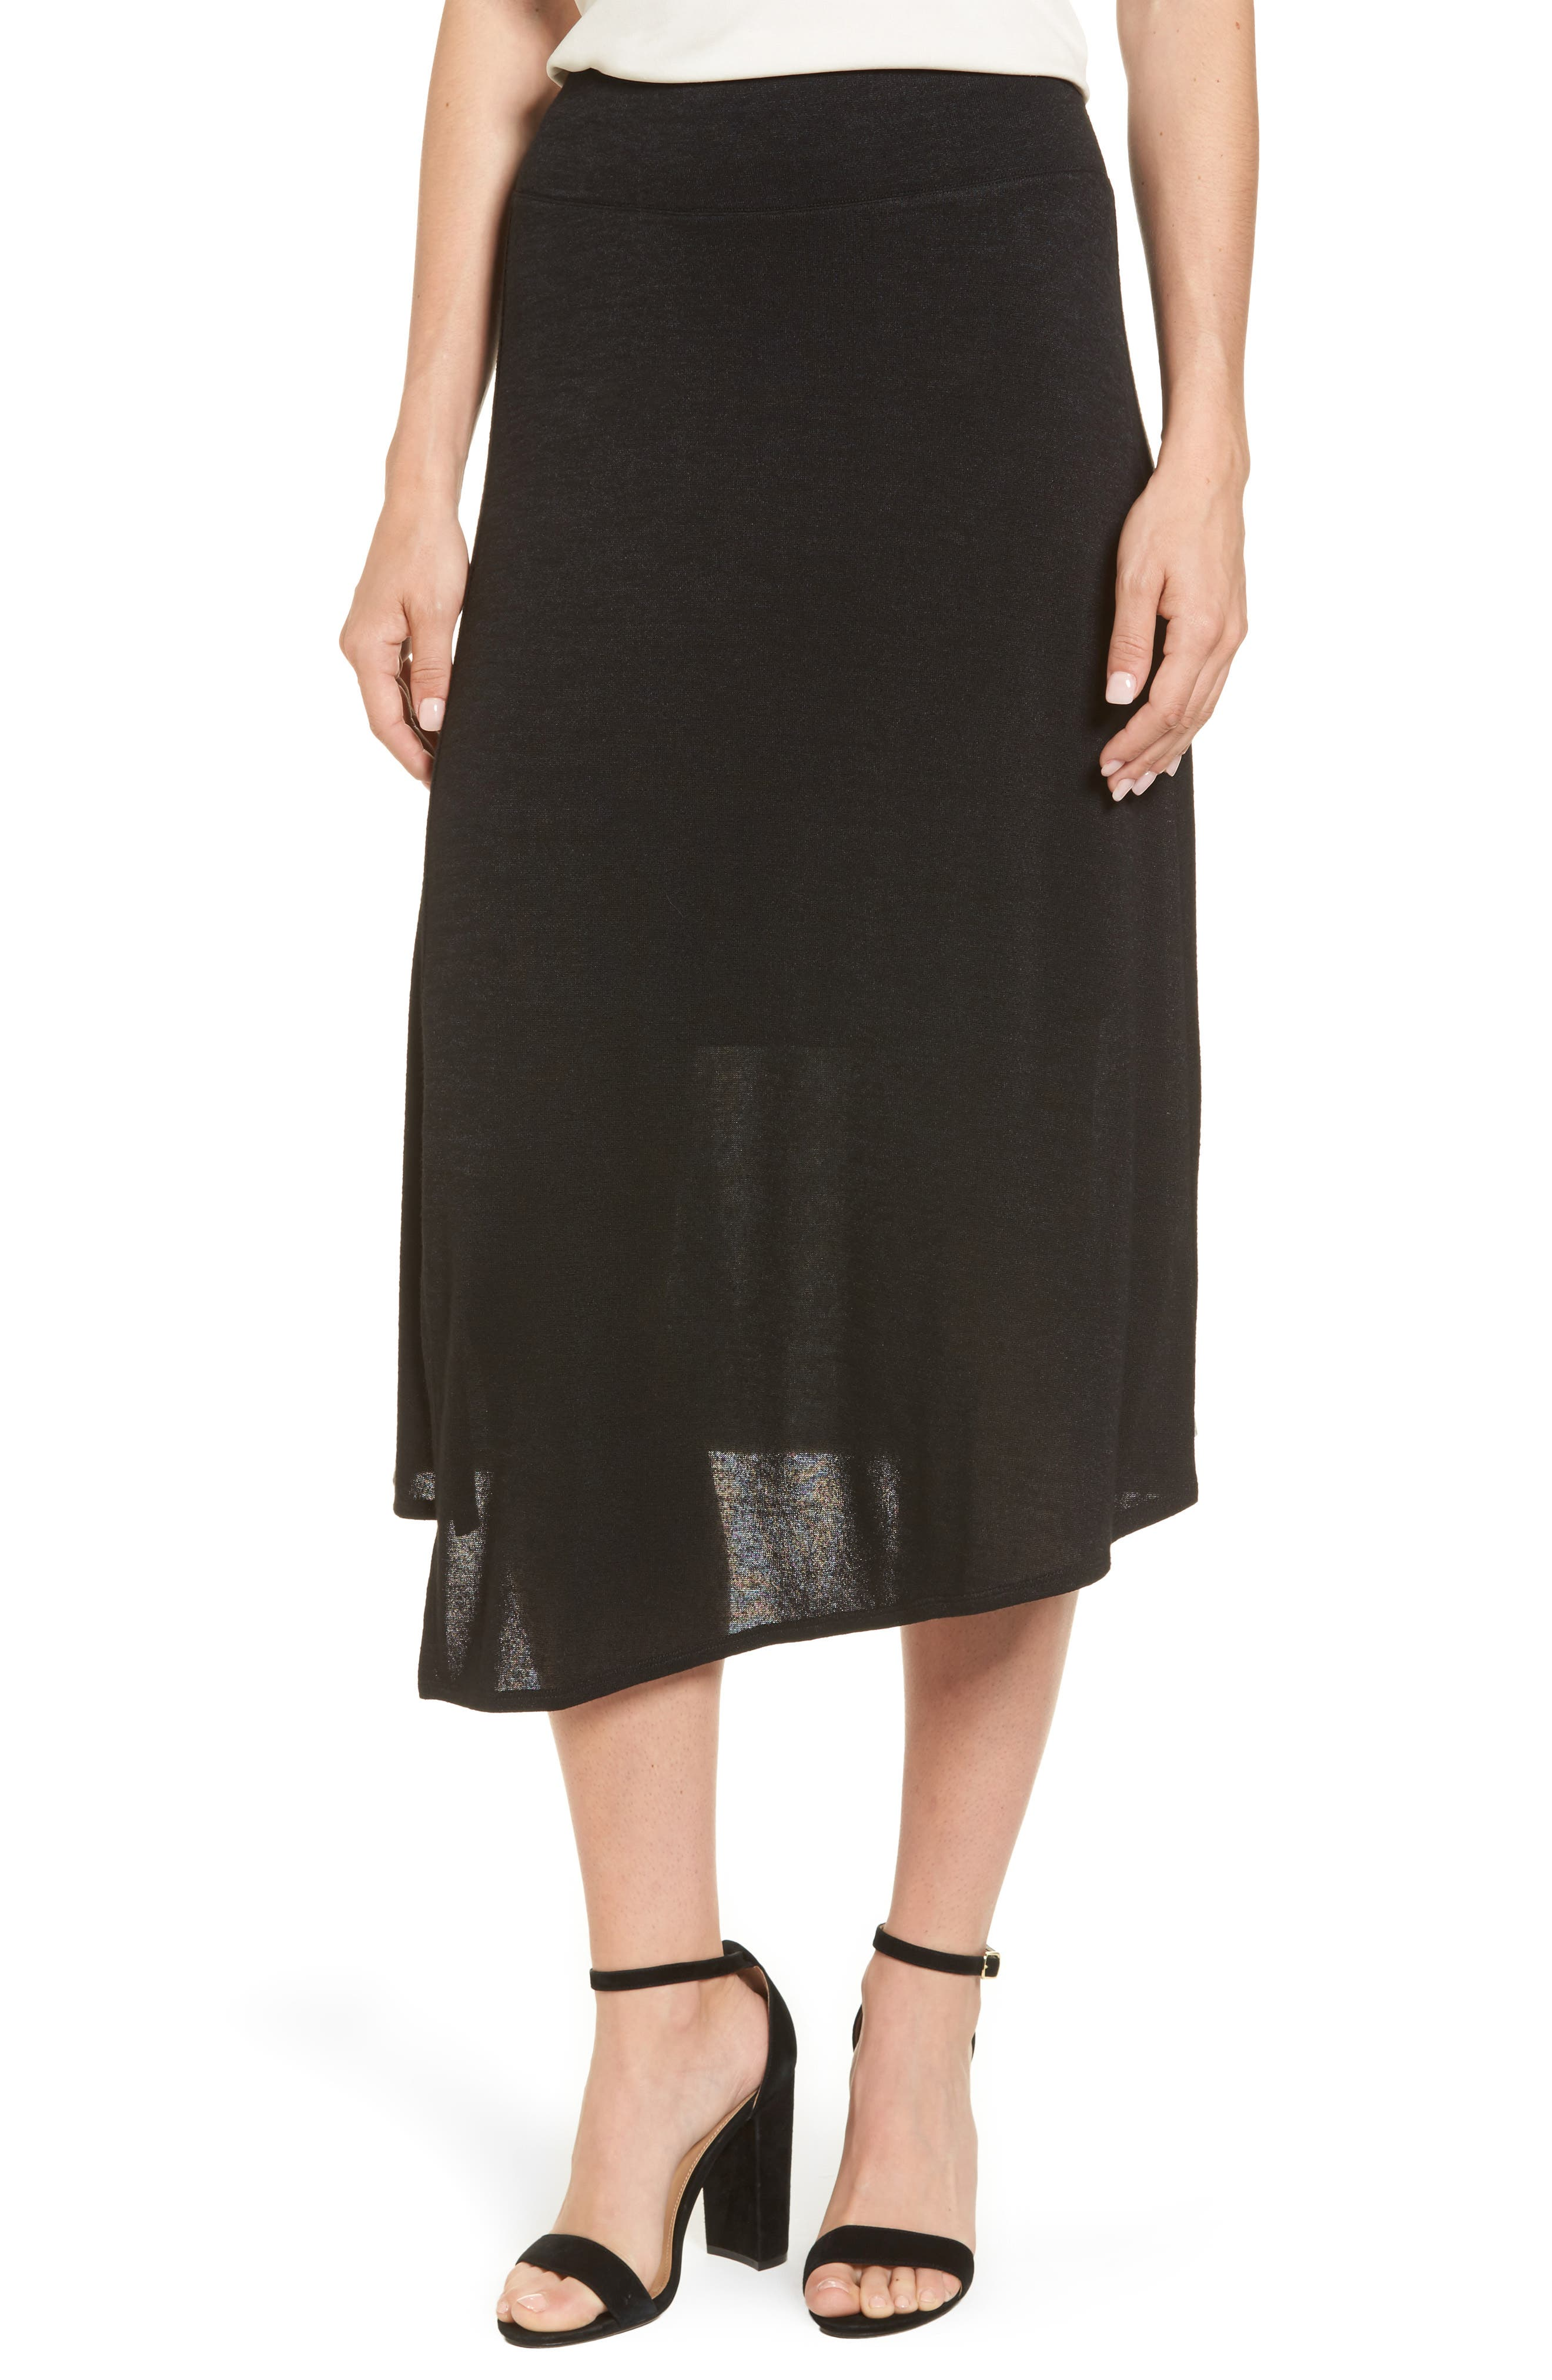 Nic + Zoe Every Occasion Faux Wrap Skirt,                         Main,                         color, Black Onyx